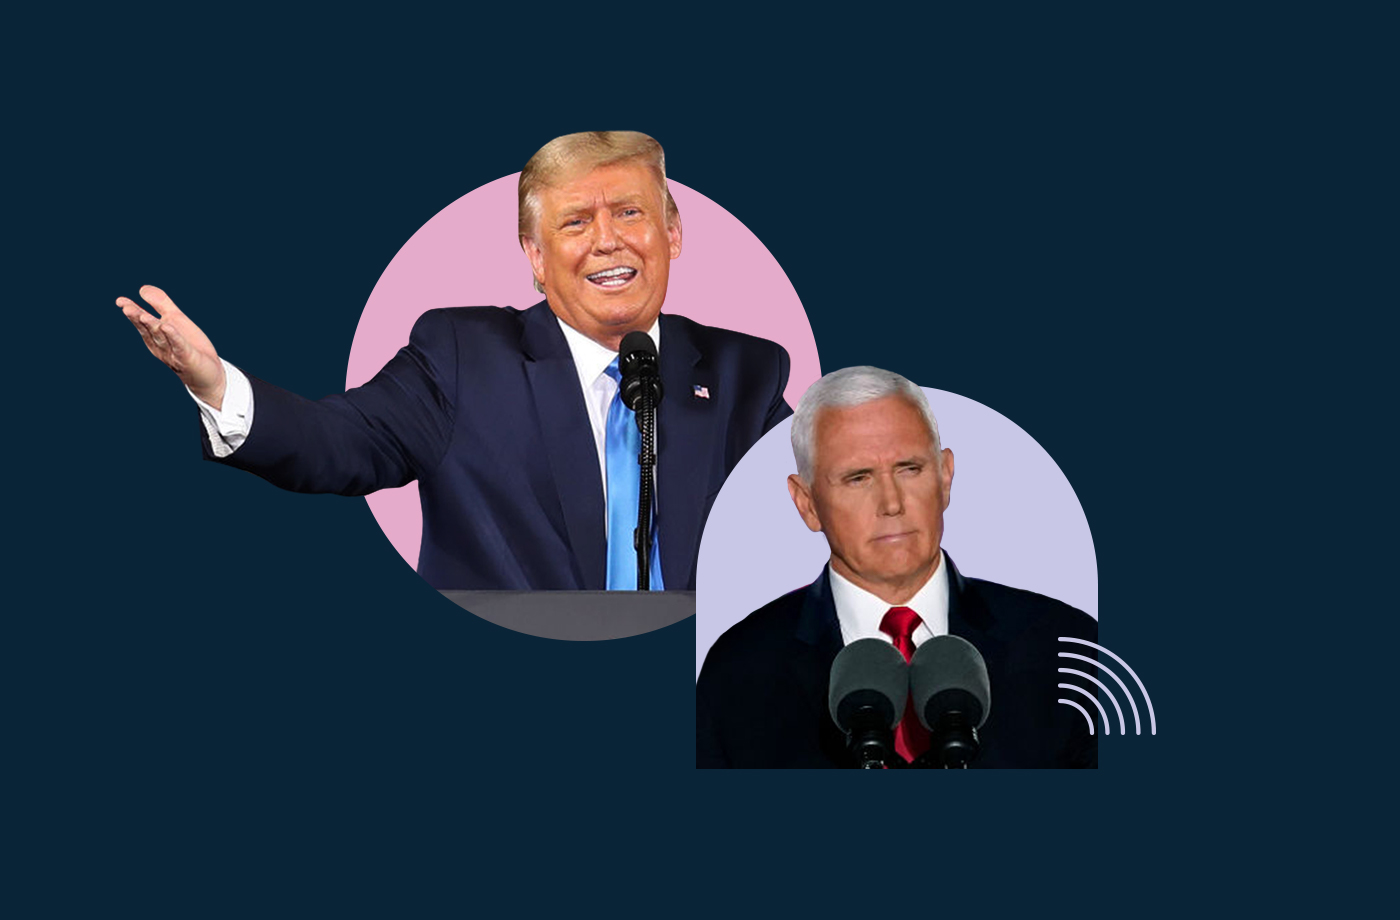 Thumbnail for Here's How Mike Pence's Views and Policies Affect Your Well-Being